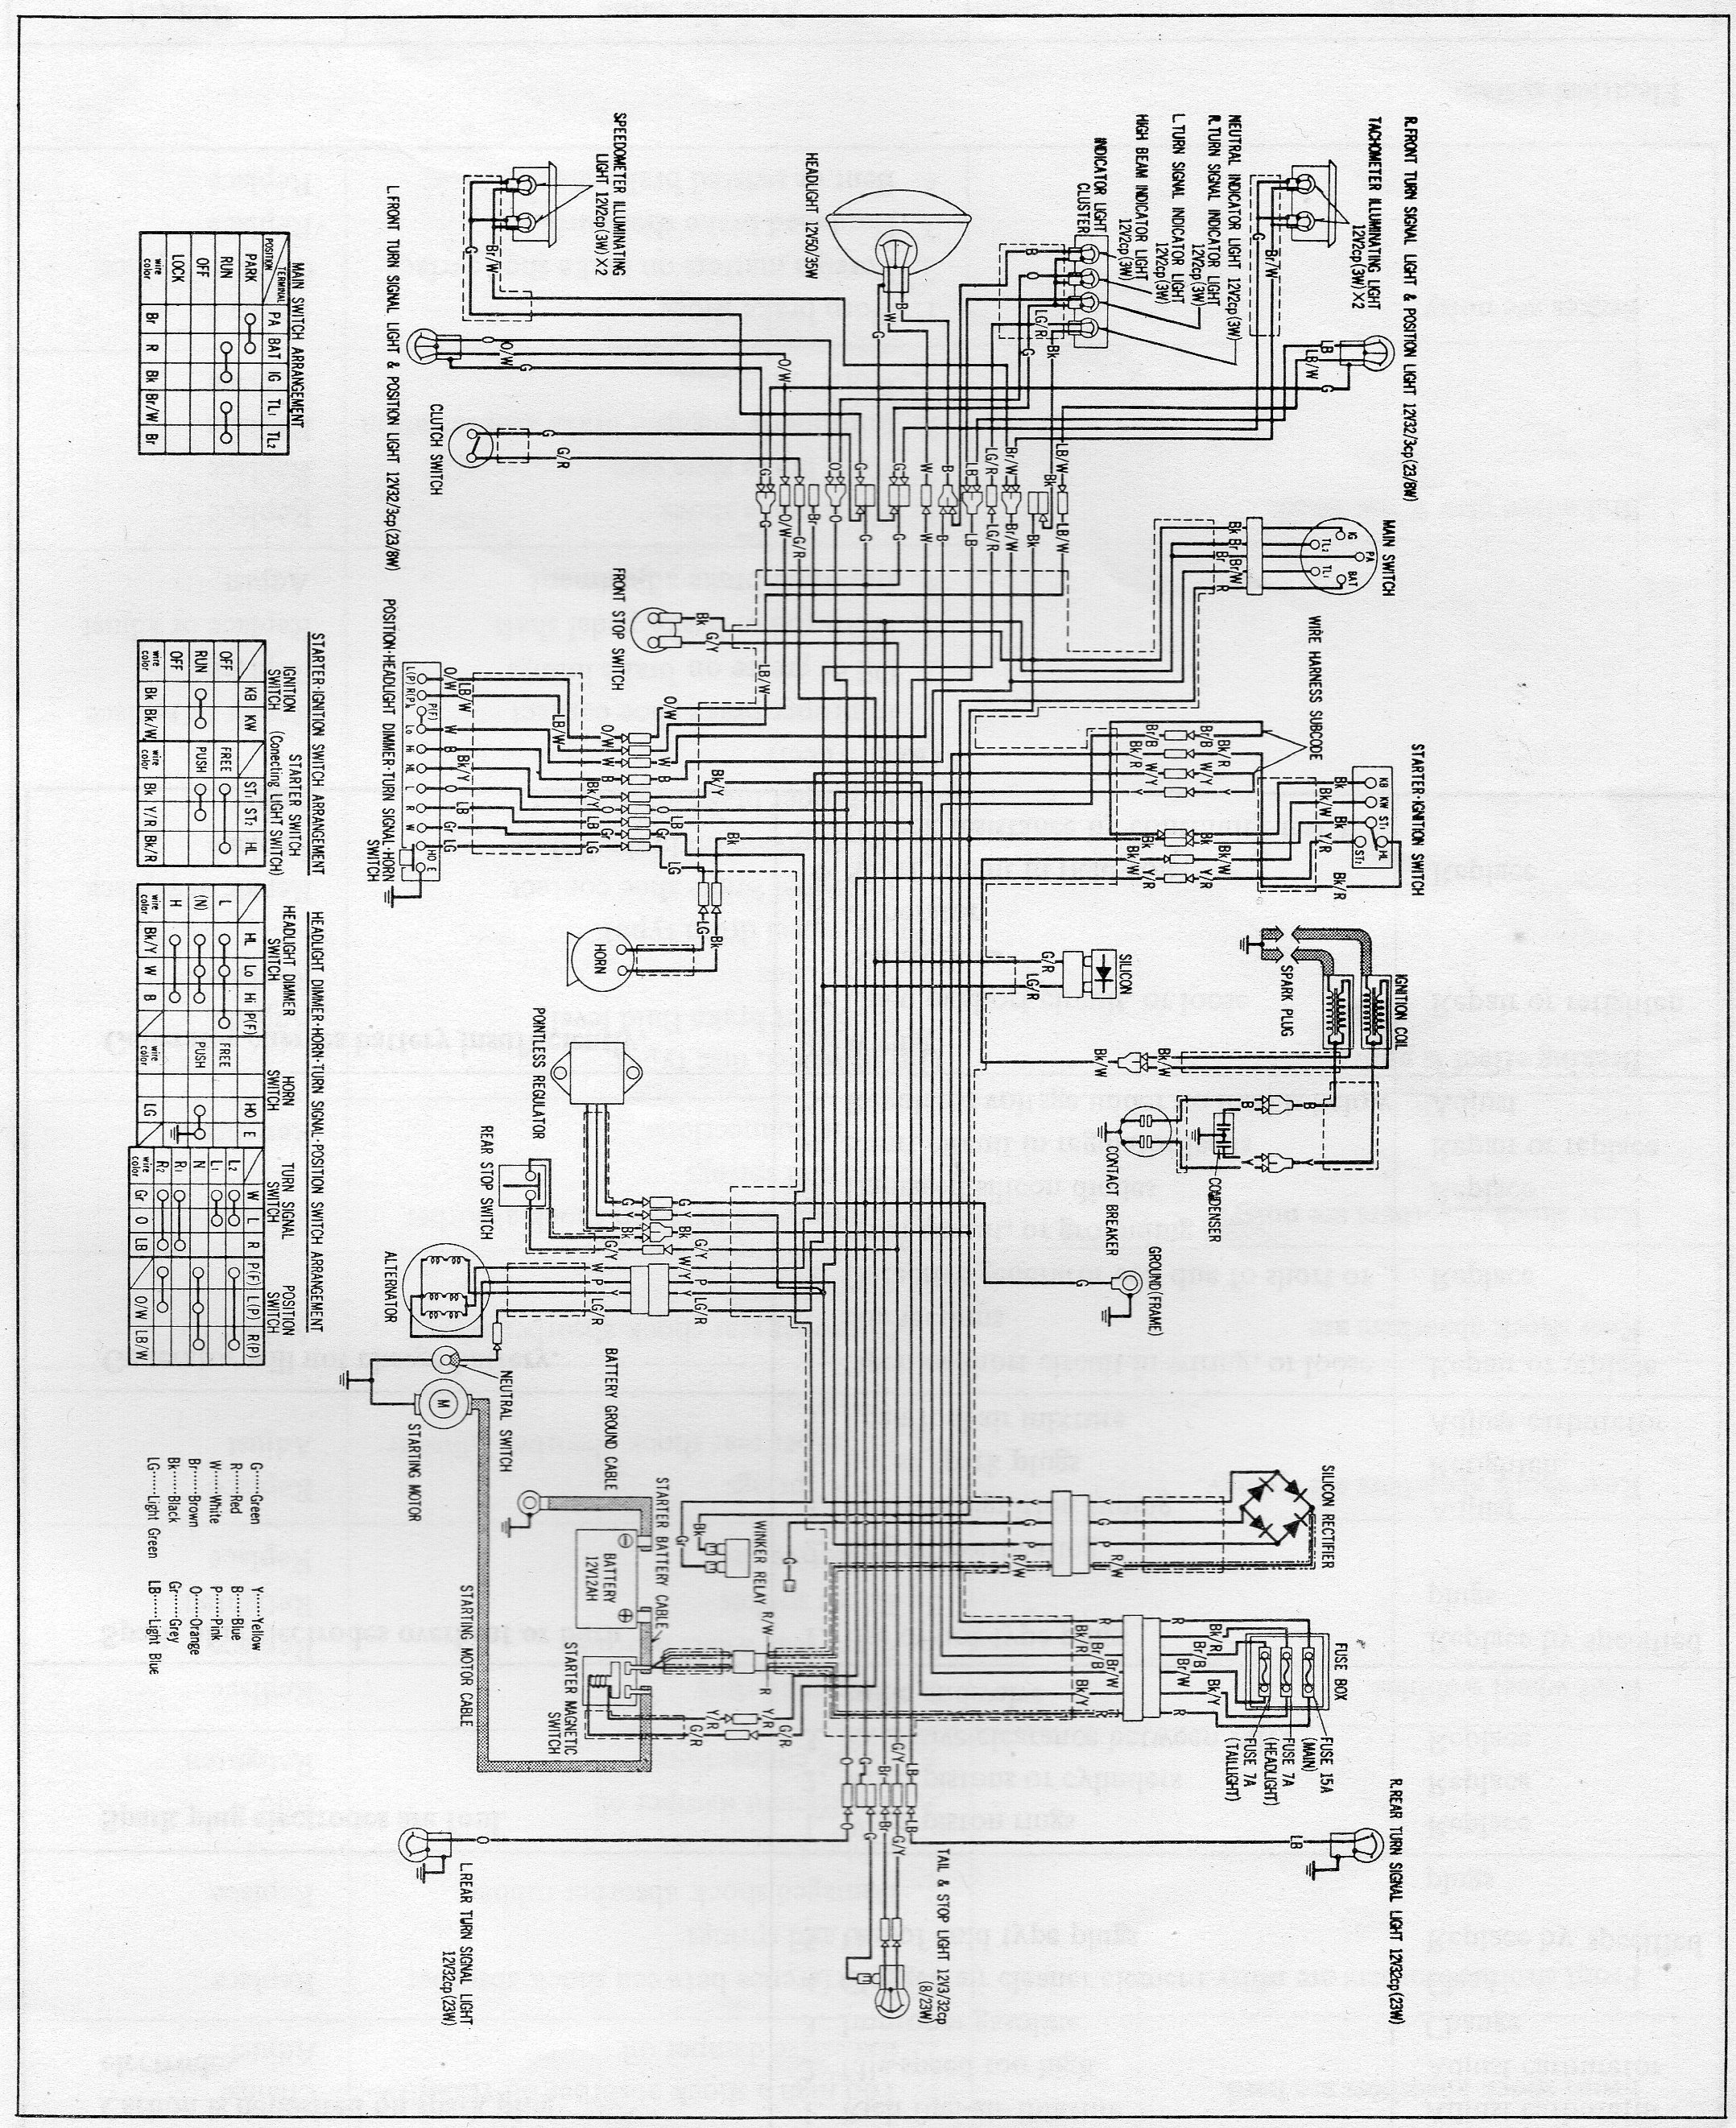 Diagram Sticker Wiring Diagram Full Version Hd Quality Wiring Diagram Sudandatabase 9x9sport Fr